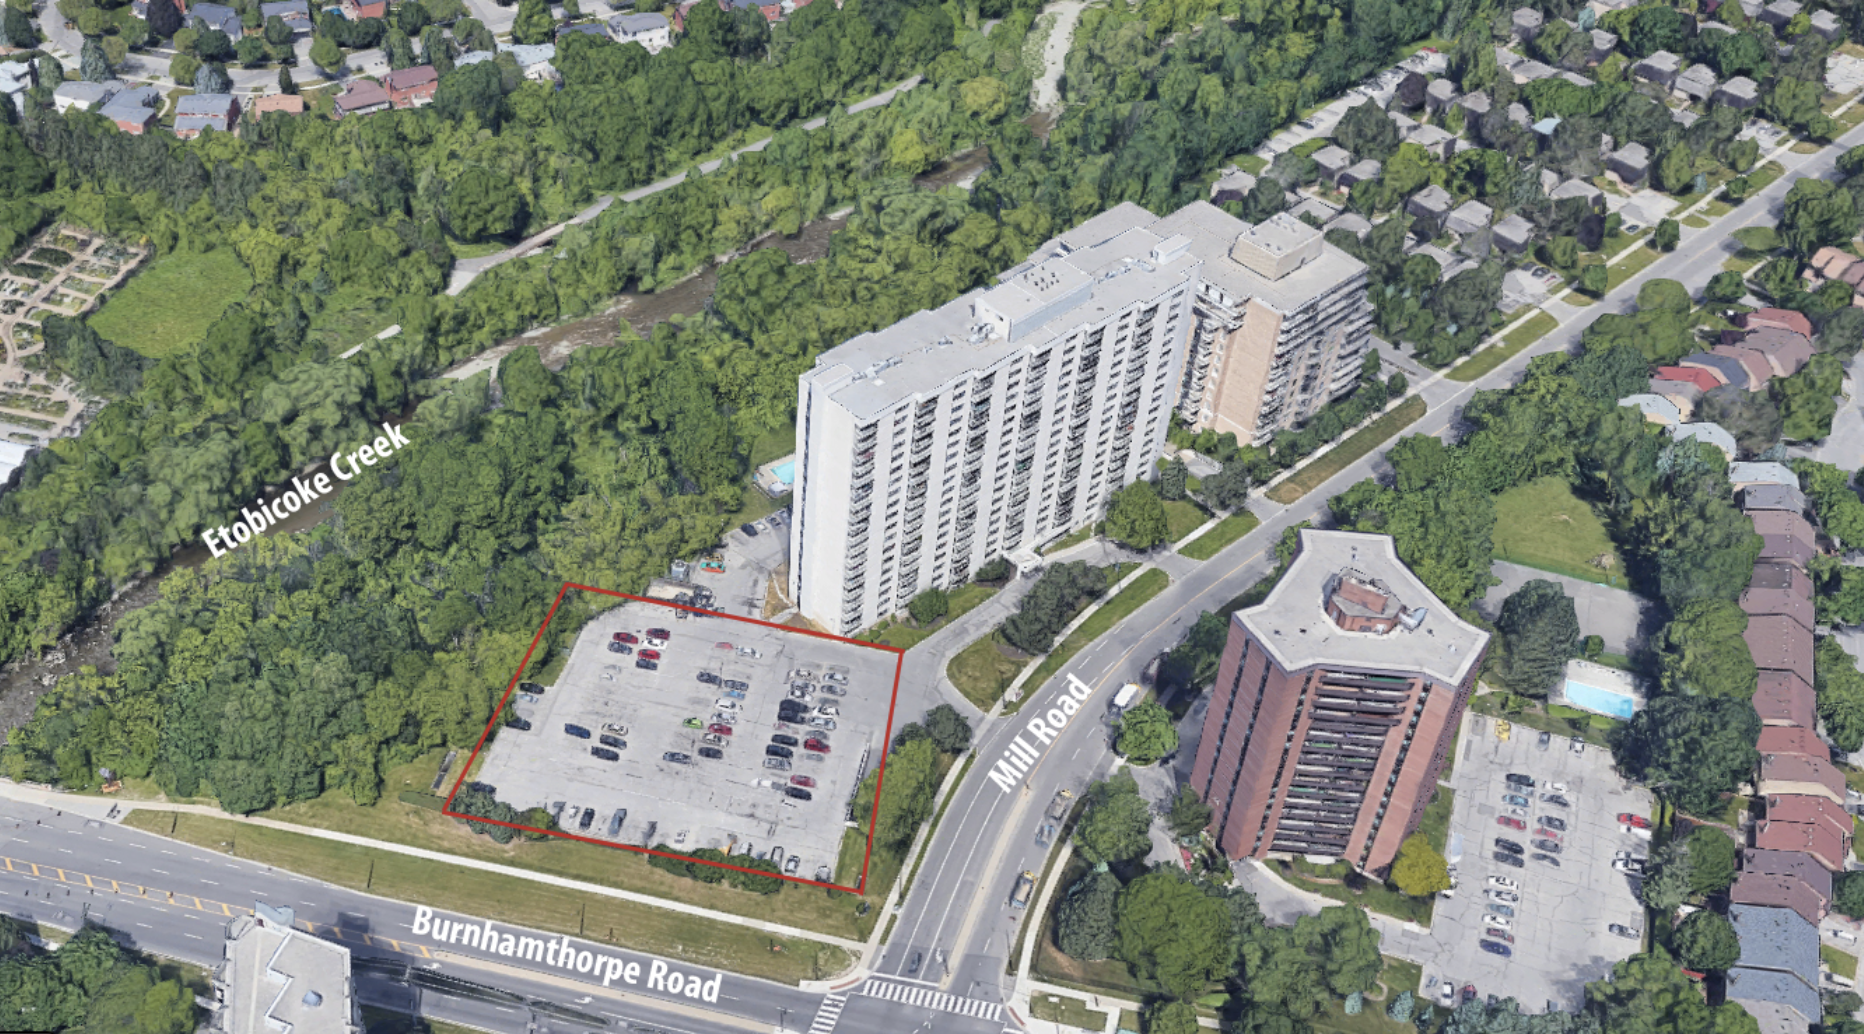 340 Mill Road, Etobicoke, designed by Quadrangle Architects for Mohican Holdings.